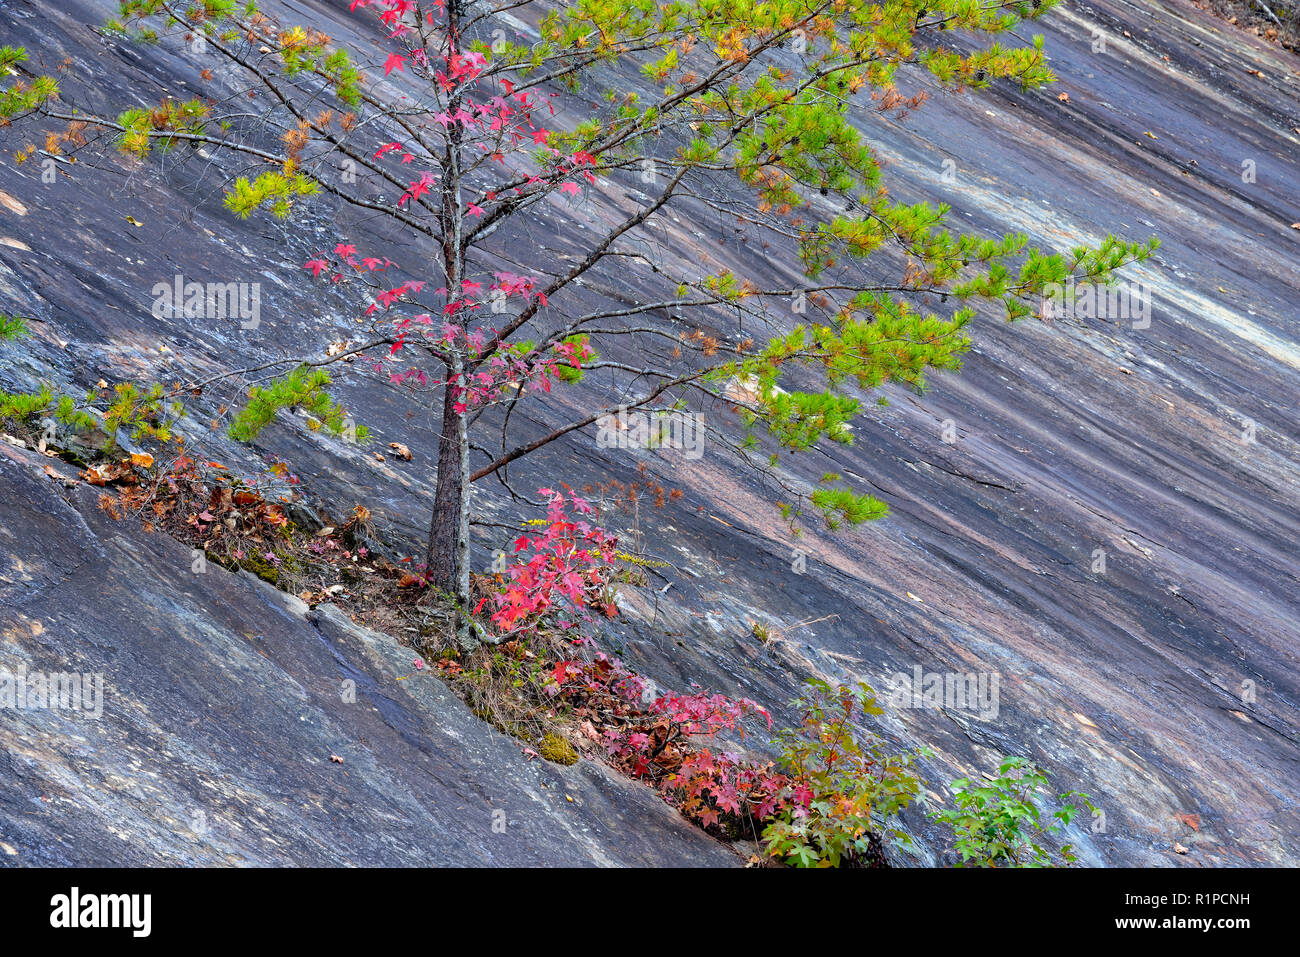 Pine and maple growing from a crack in a rock face, Great Smoky Mountains National Park, Tennessee, USA - Stock Image